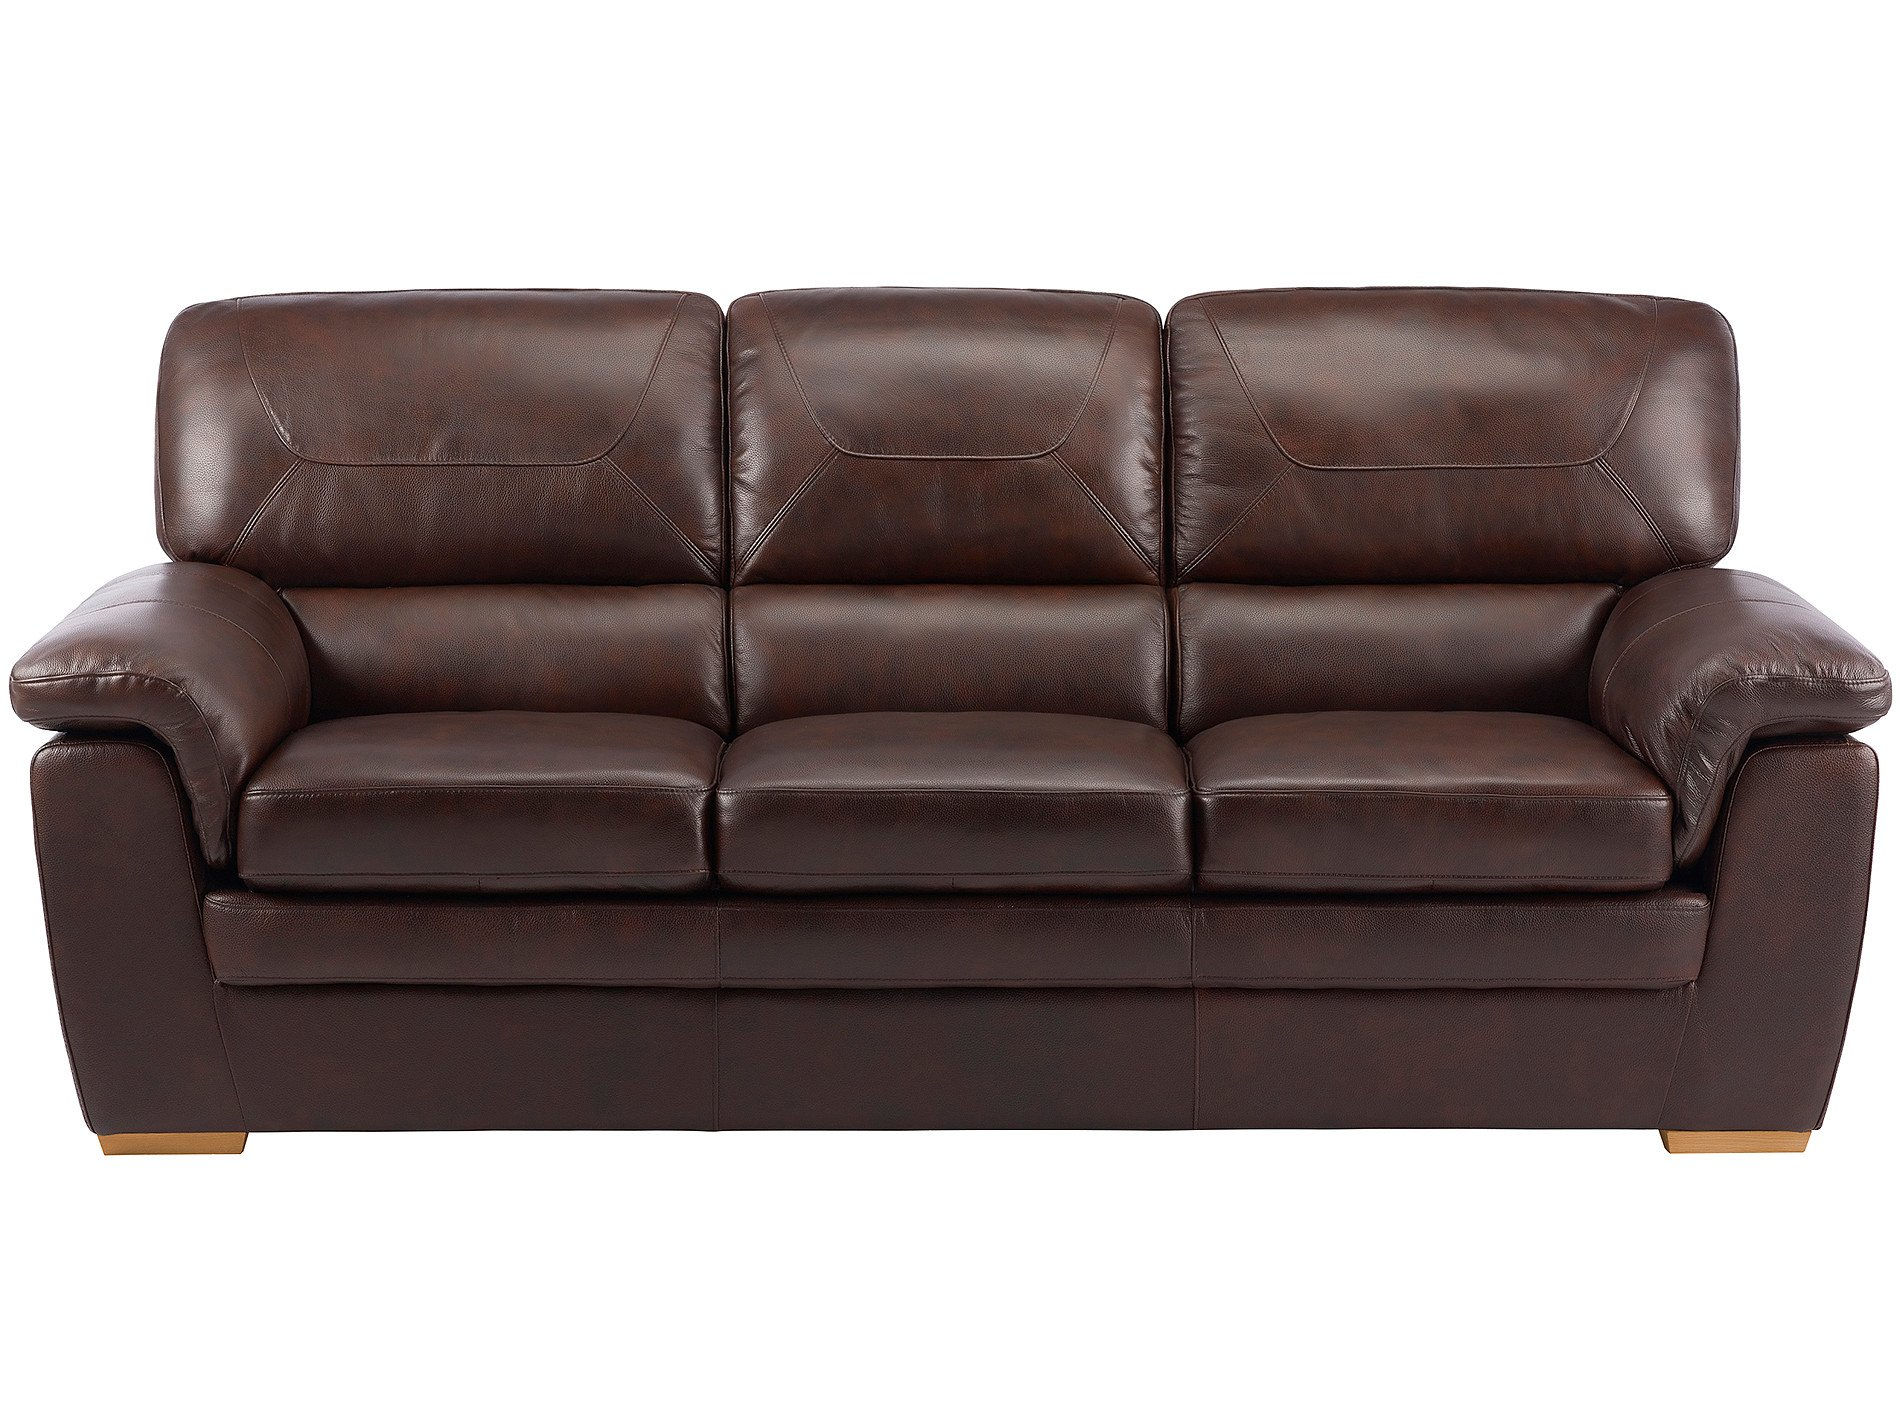 Quality Sofas At Incredible Prices